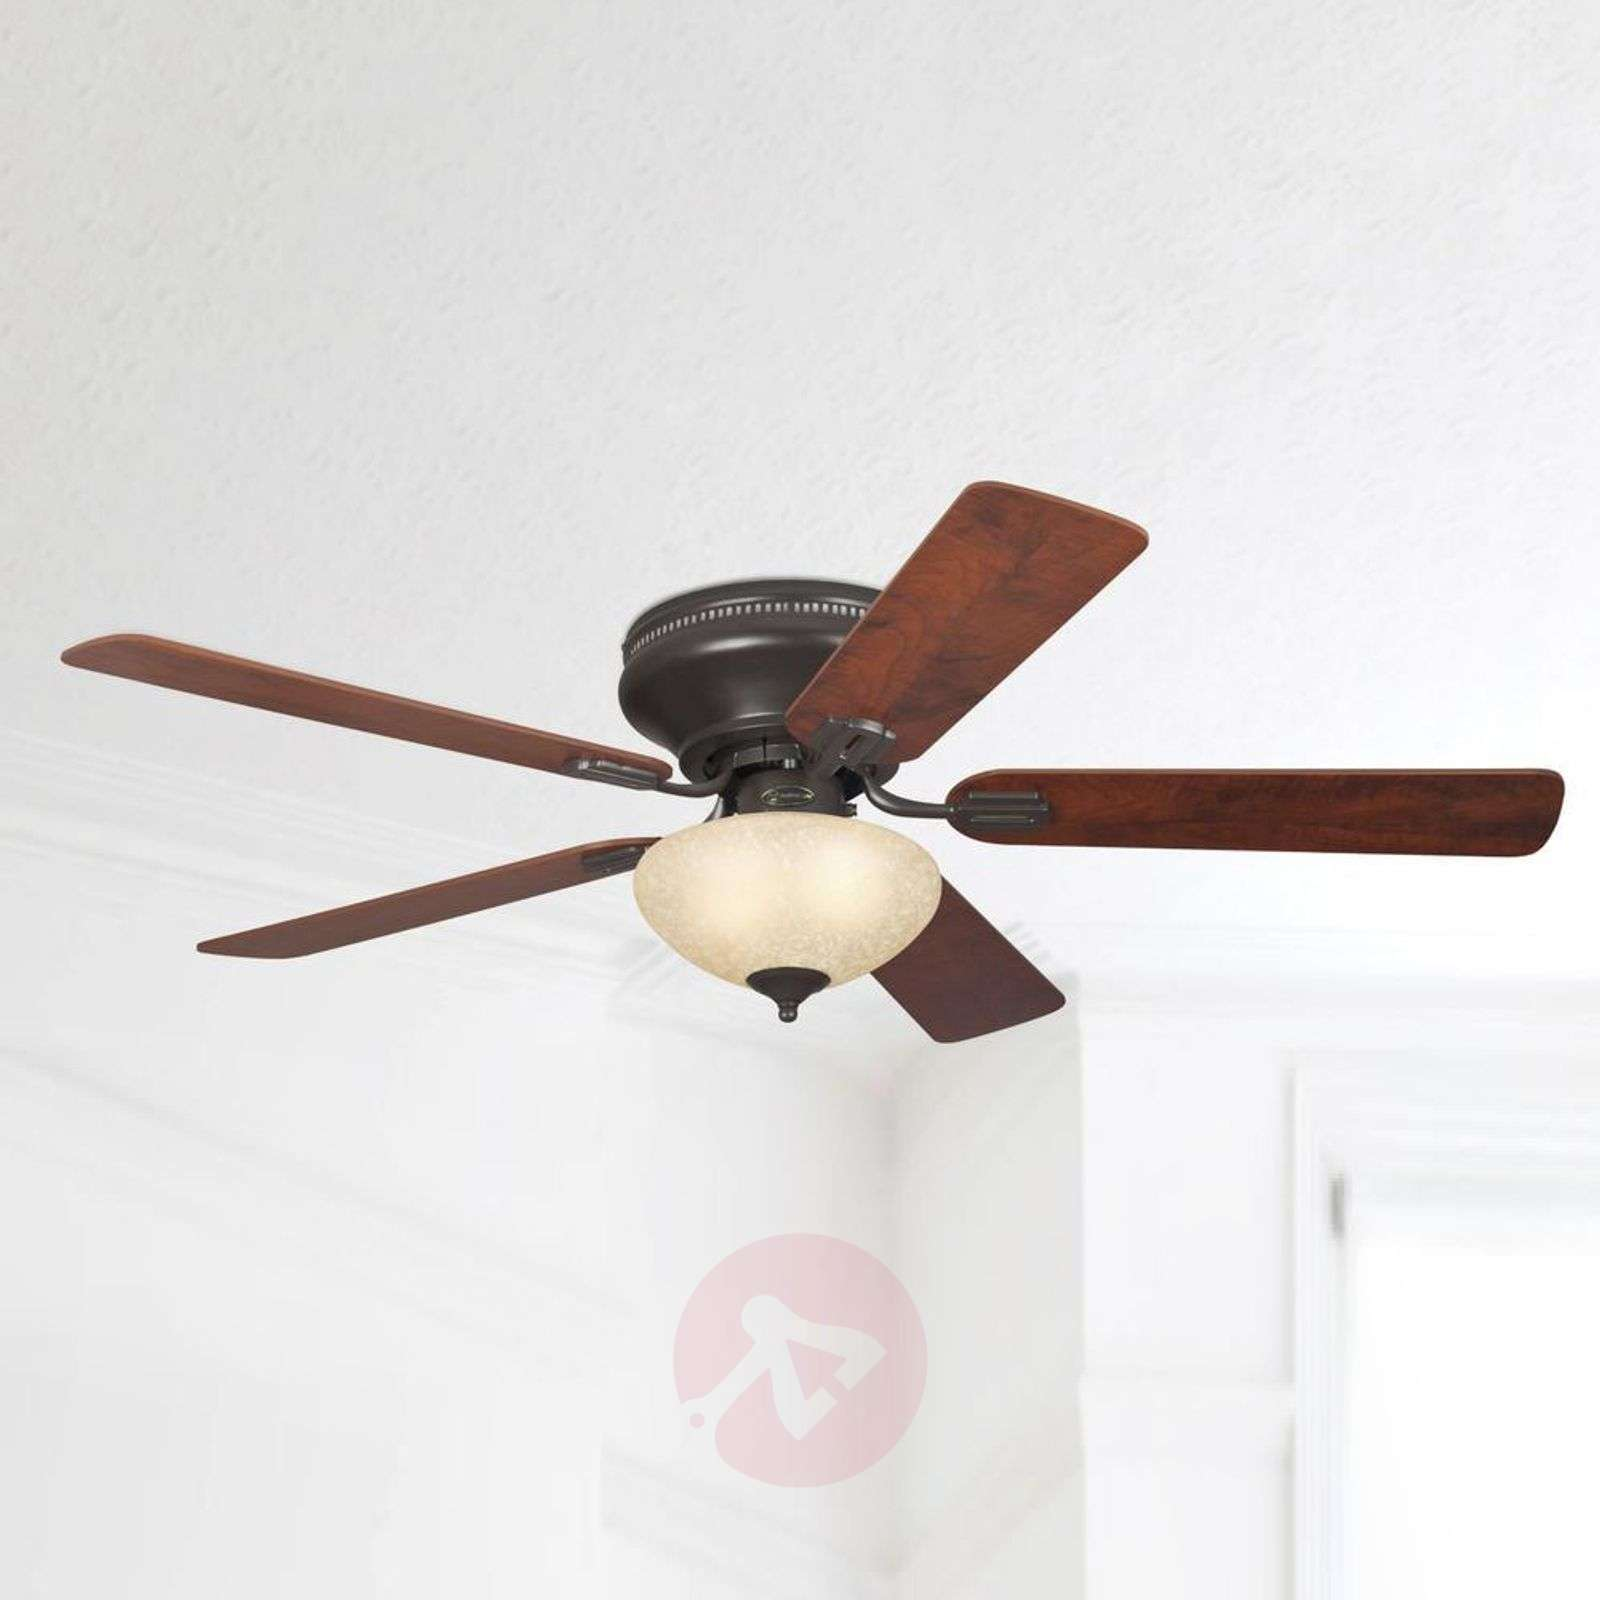 everett rustic ceiling fan with light. Black Bedroom Furniture Sets. Home Design Ideas